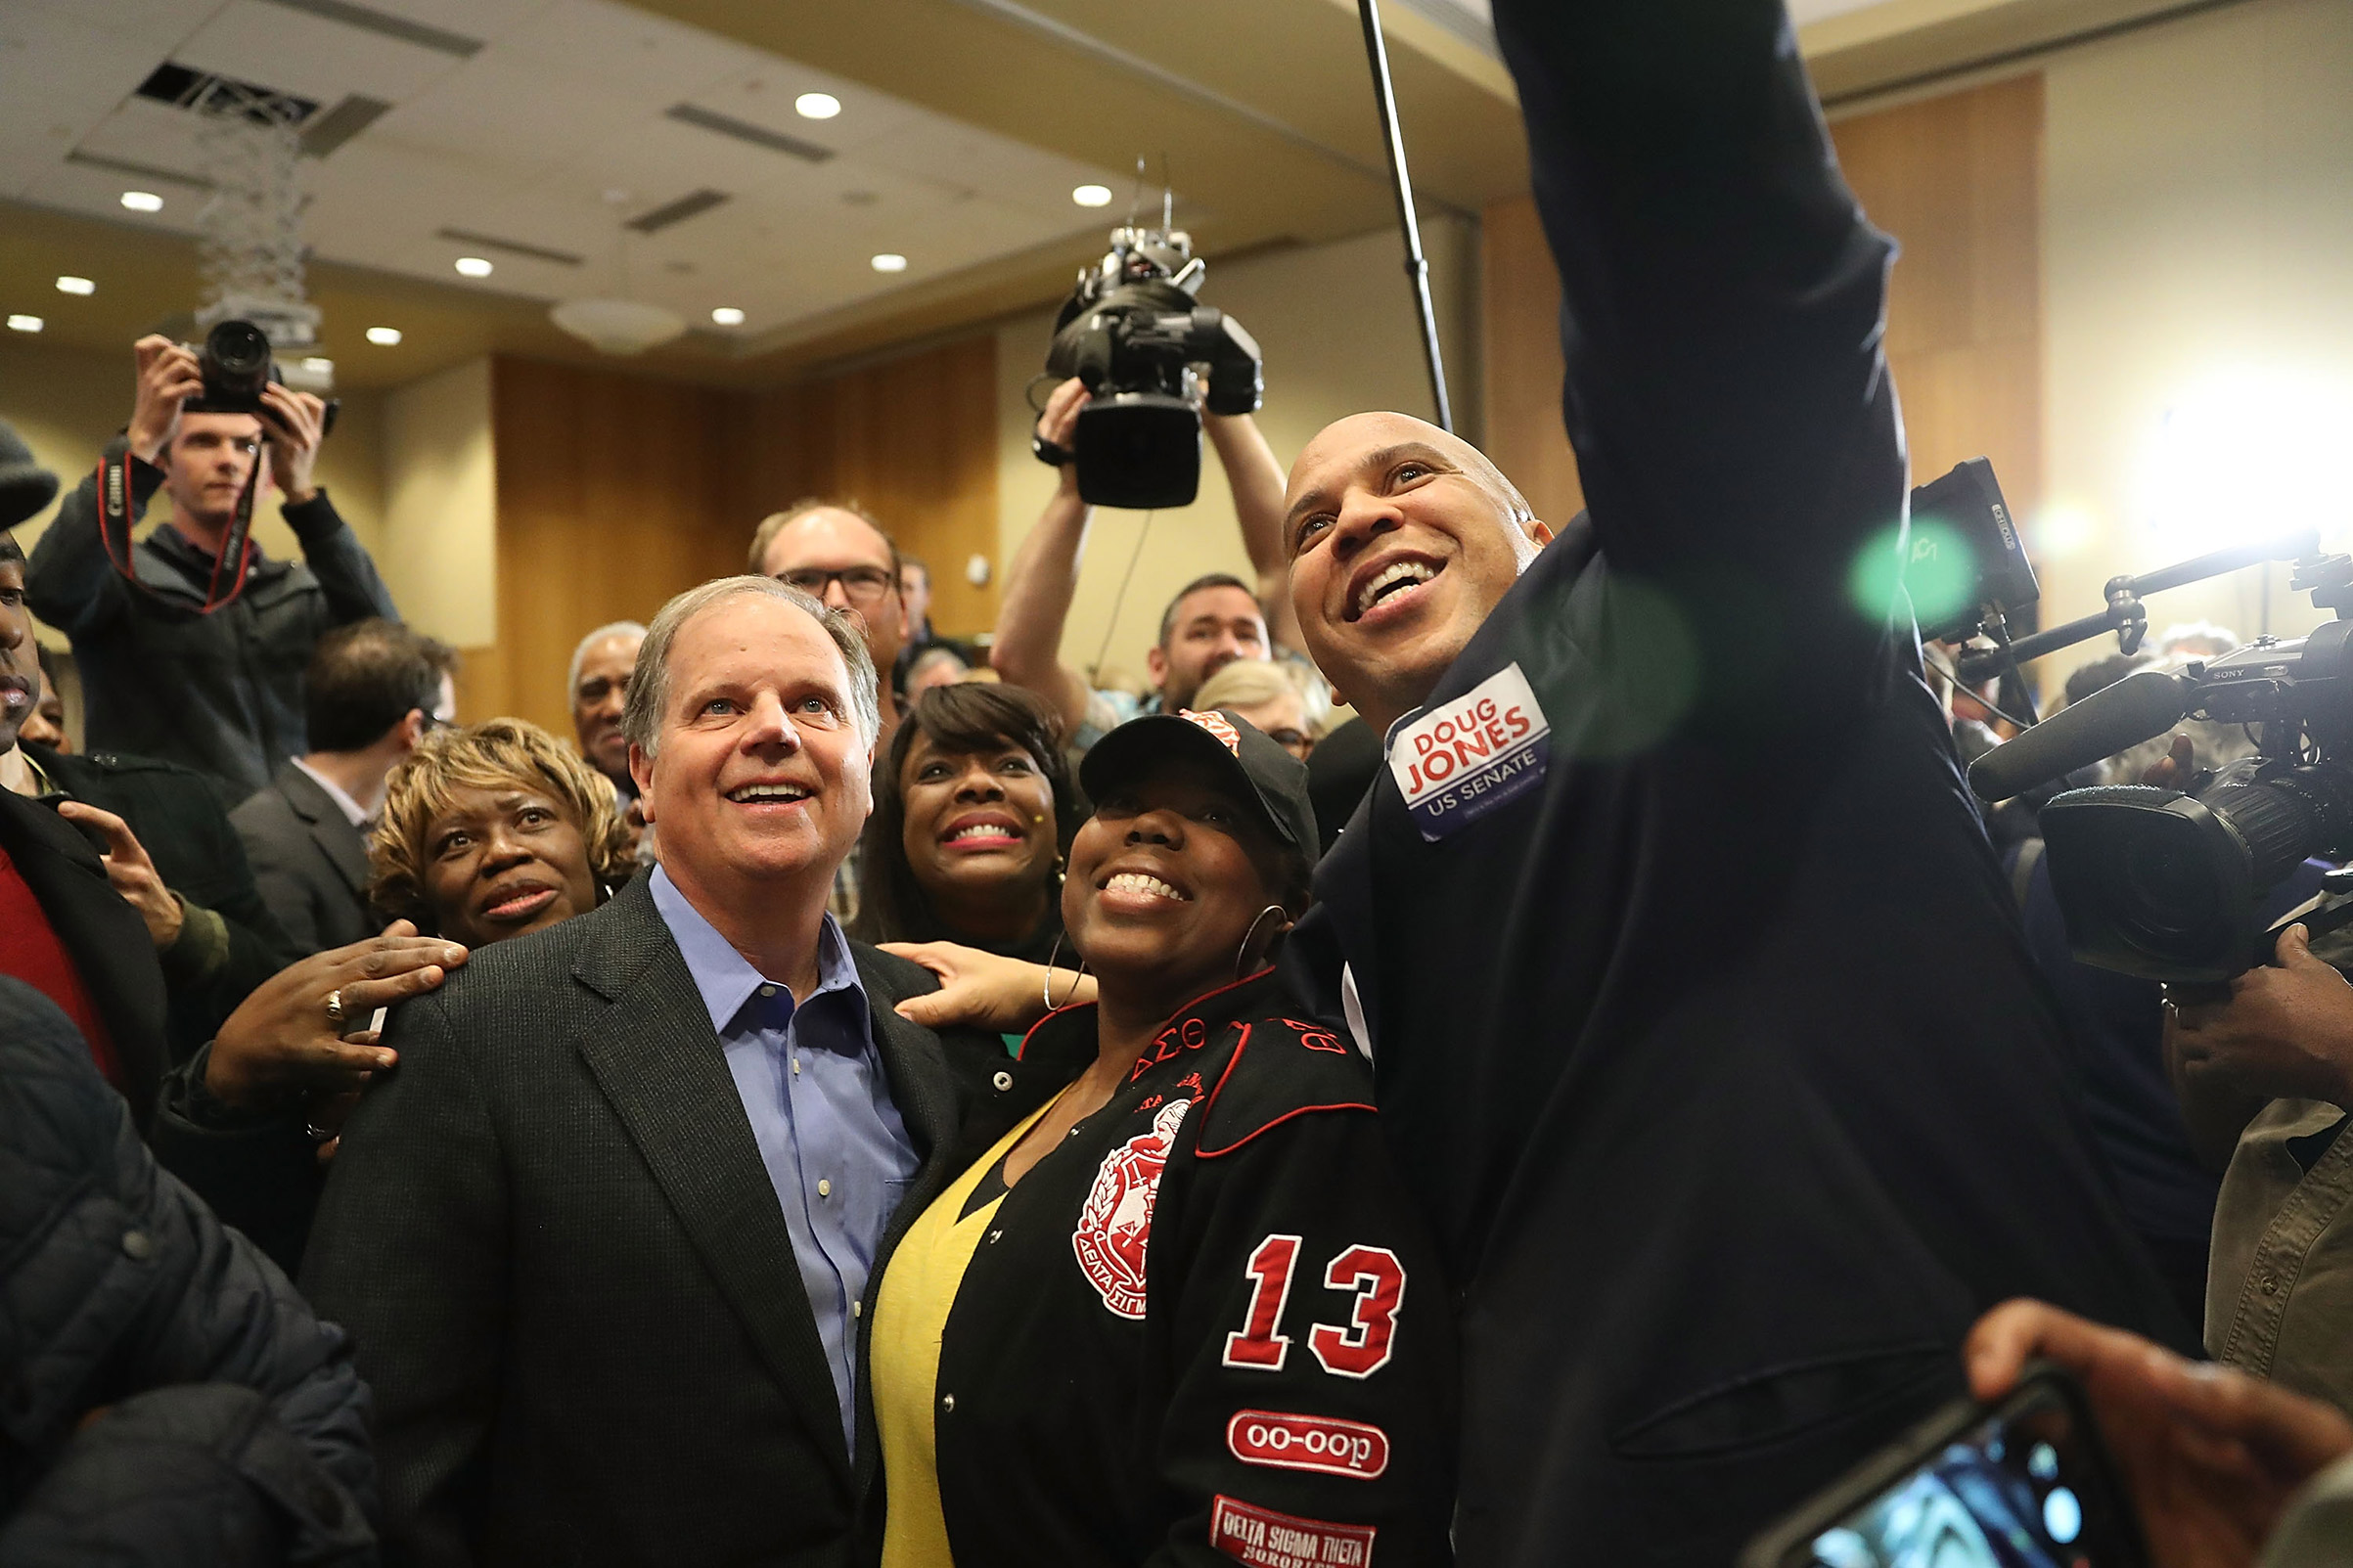 Democratic Senatorial candidate Doug Jones takes a group picture with Sen. Cory Booker (D-NJ) (R) and Rep. Terri Sewell (D-AL) (third from right) and supporters during a campaign event held at Alabama State University on December 9, 2017, in Montgomery, Alabama.